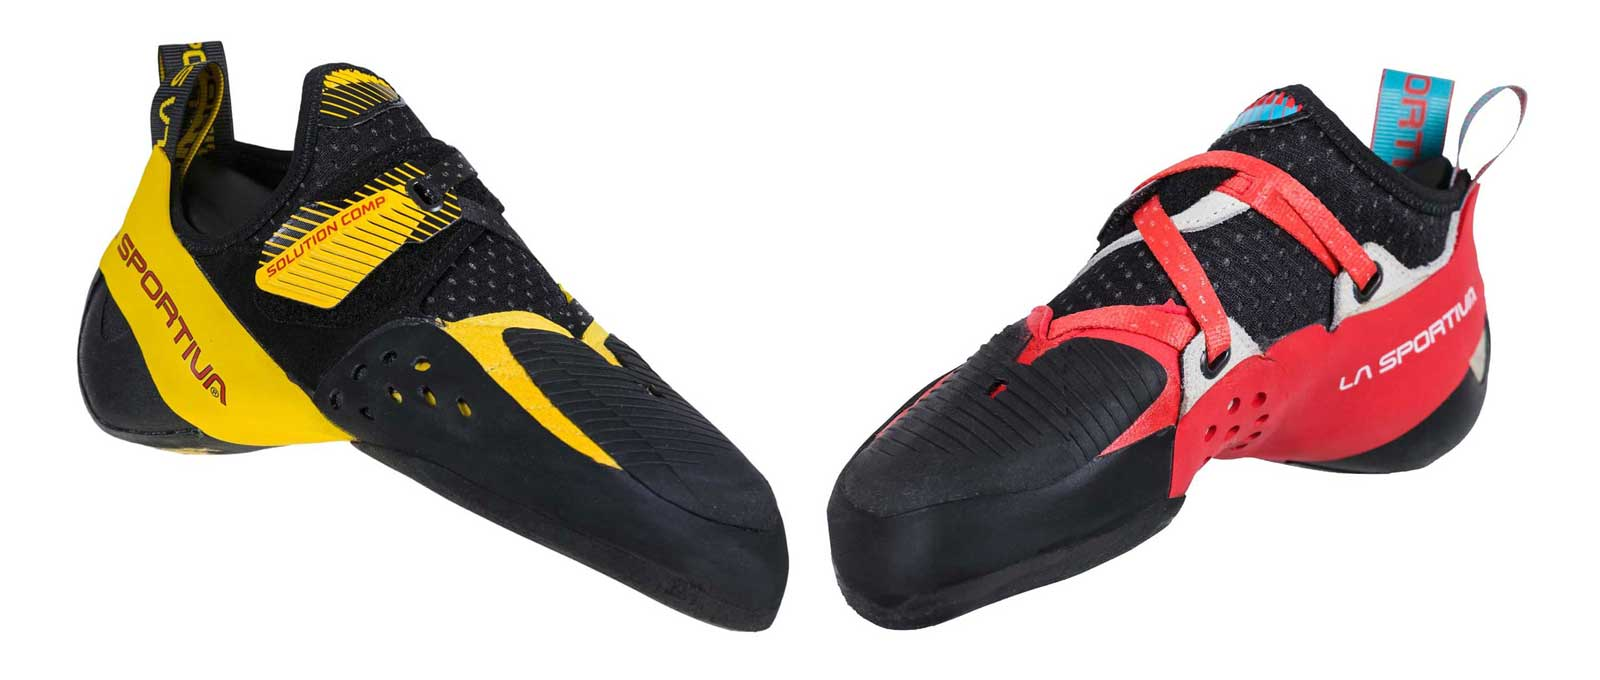 La Sportiva Solution Comp Product Review_1